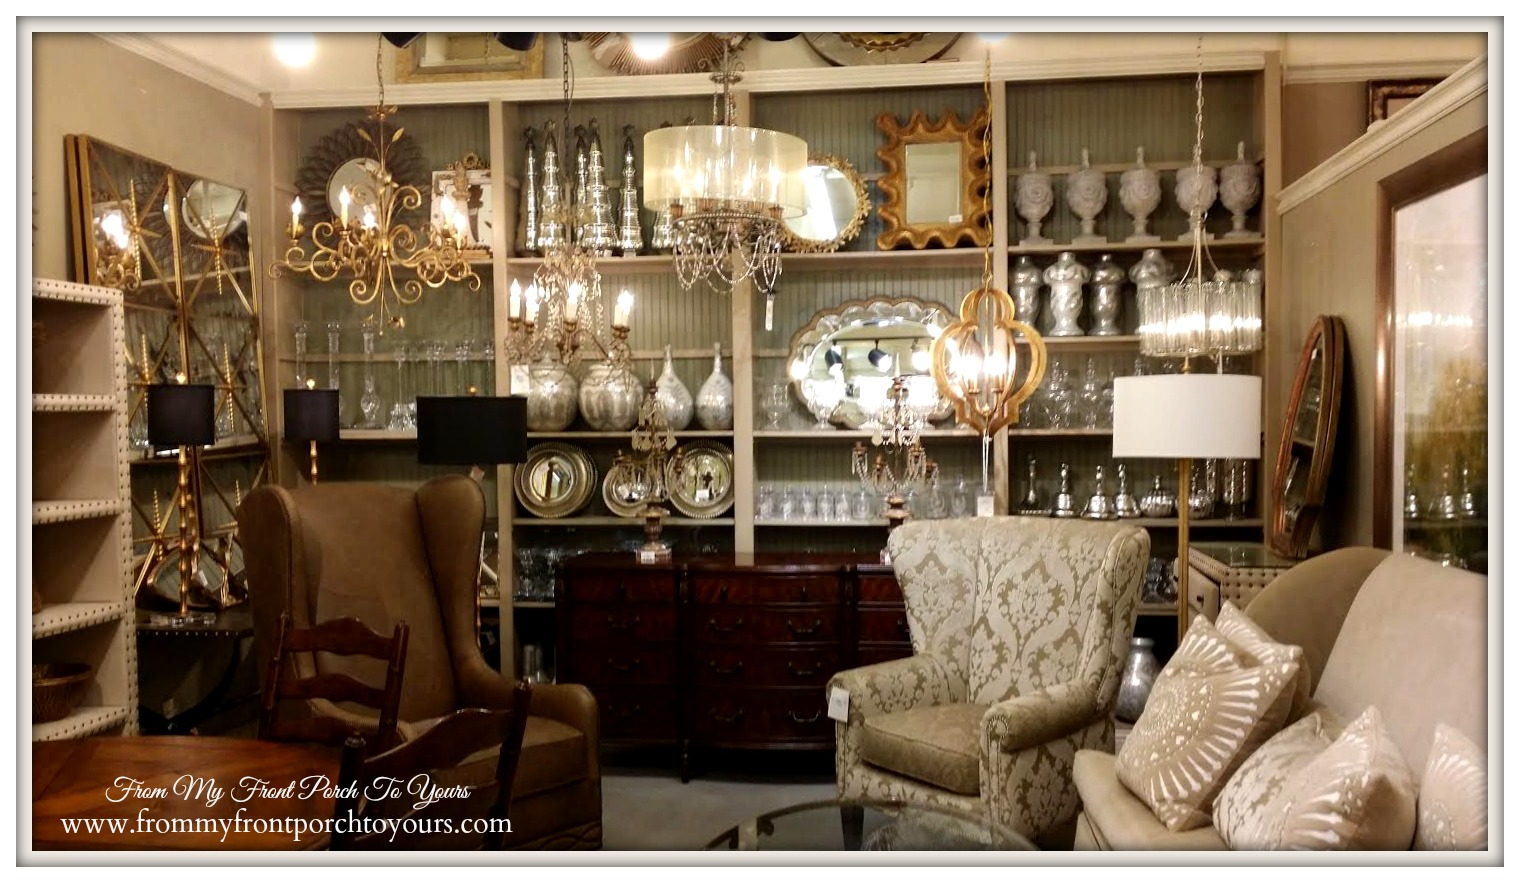 Laurie's Home Furnishings- Modern Glam-From My Front Porch To Yours